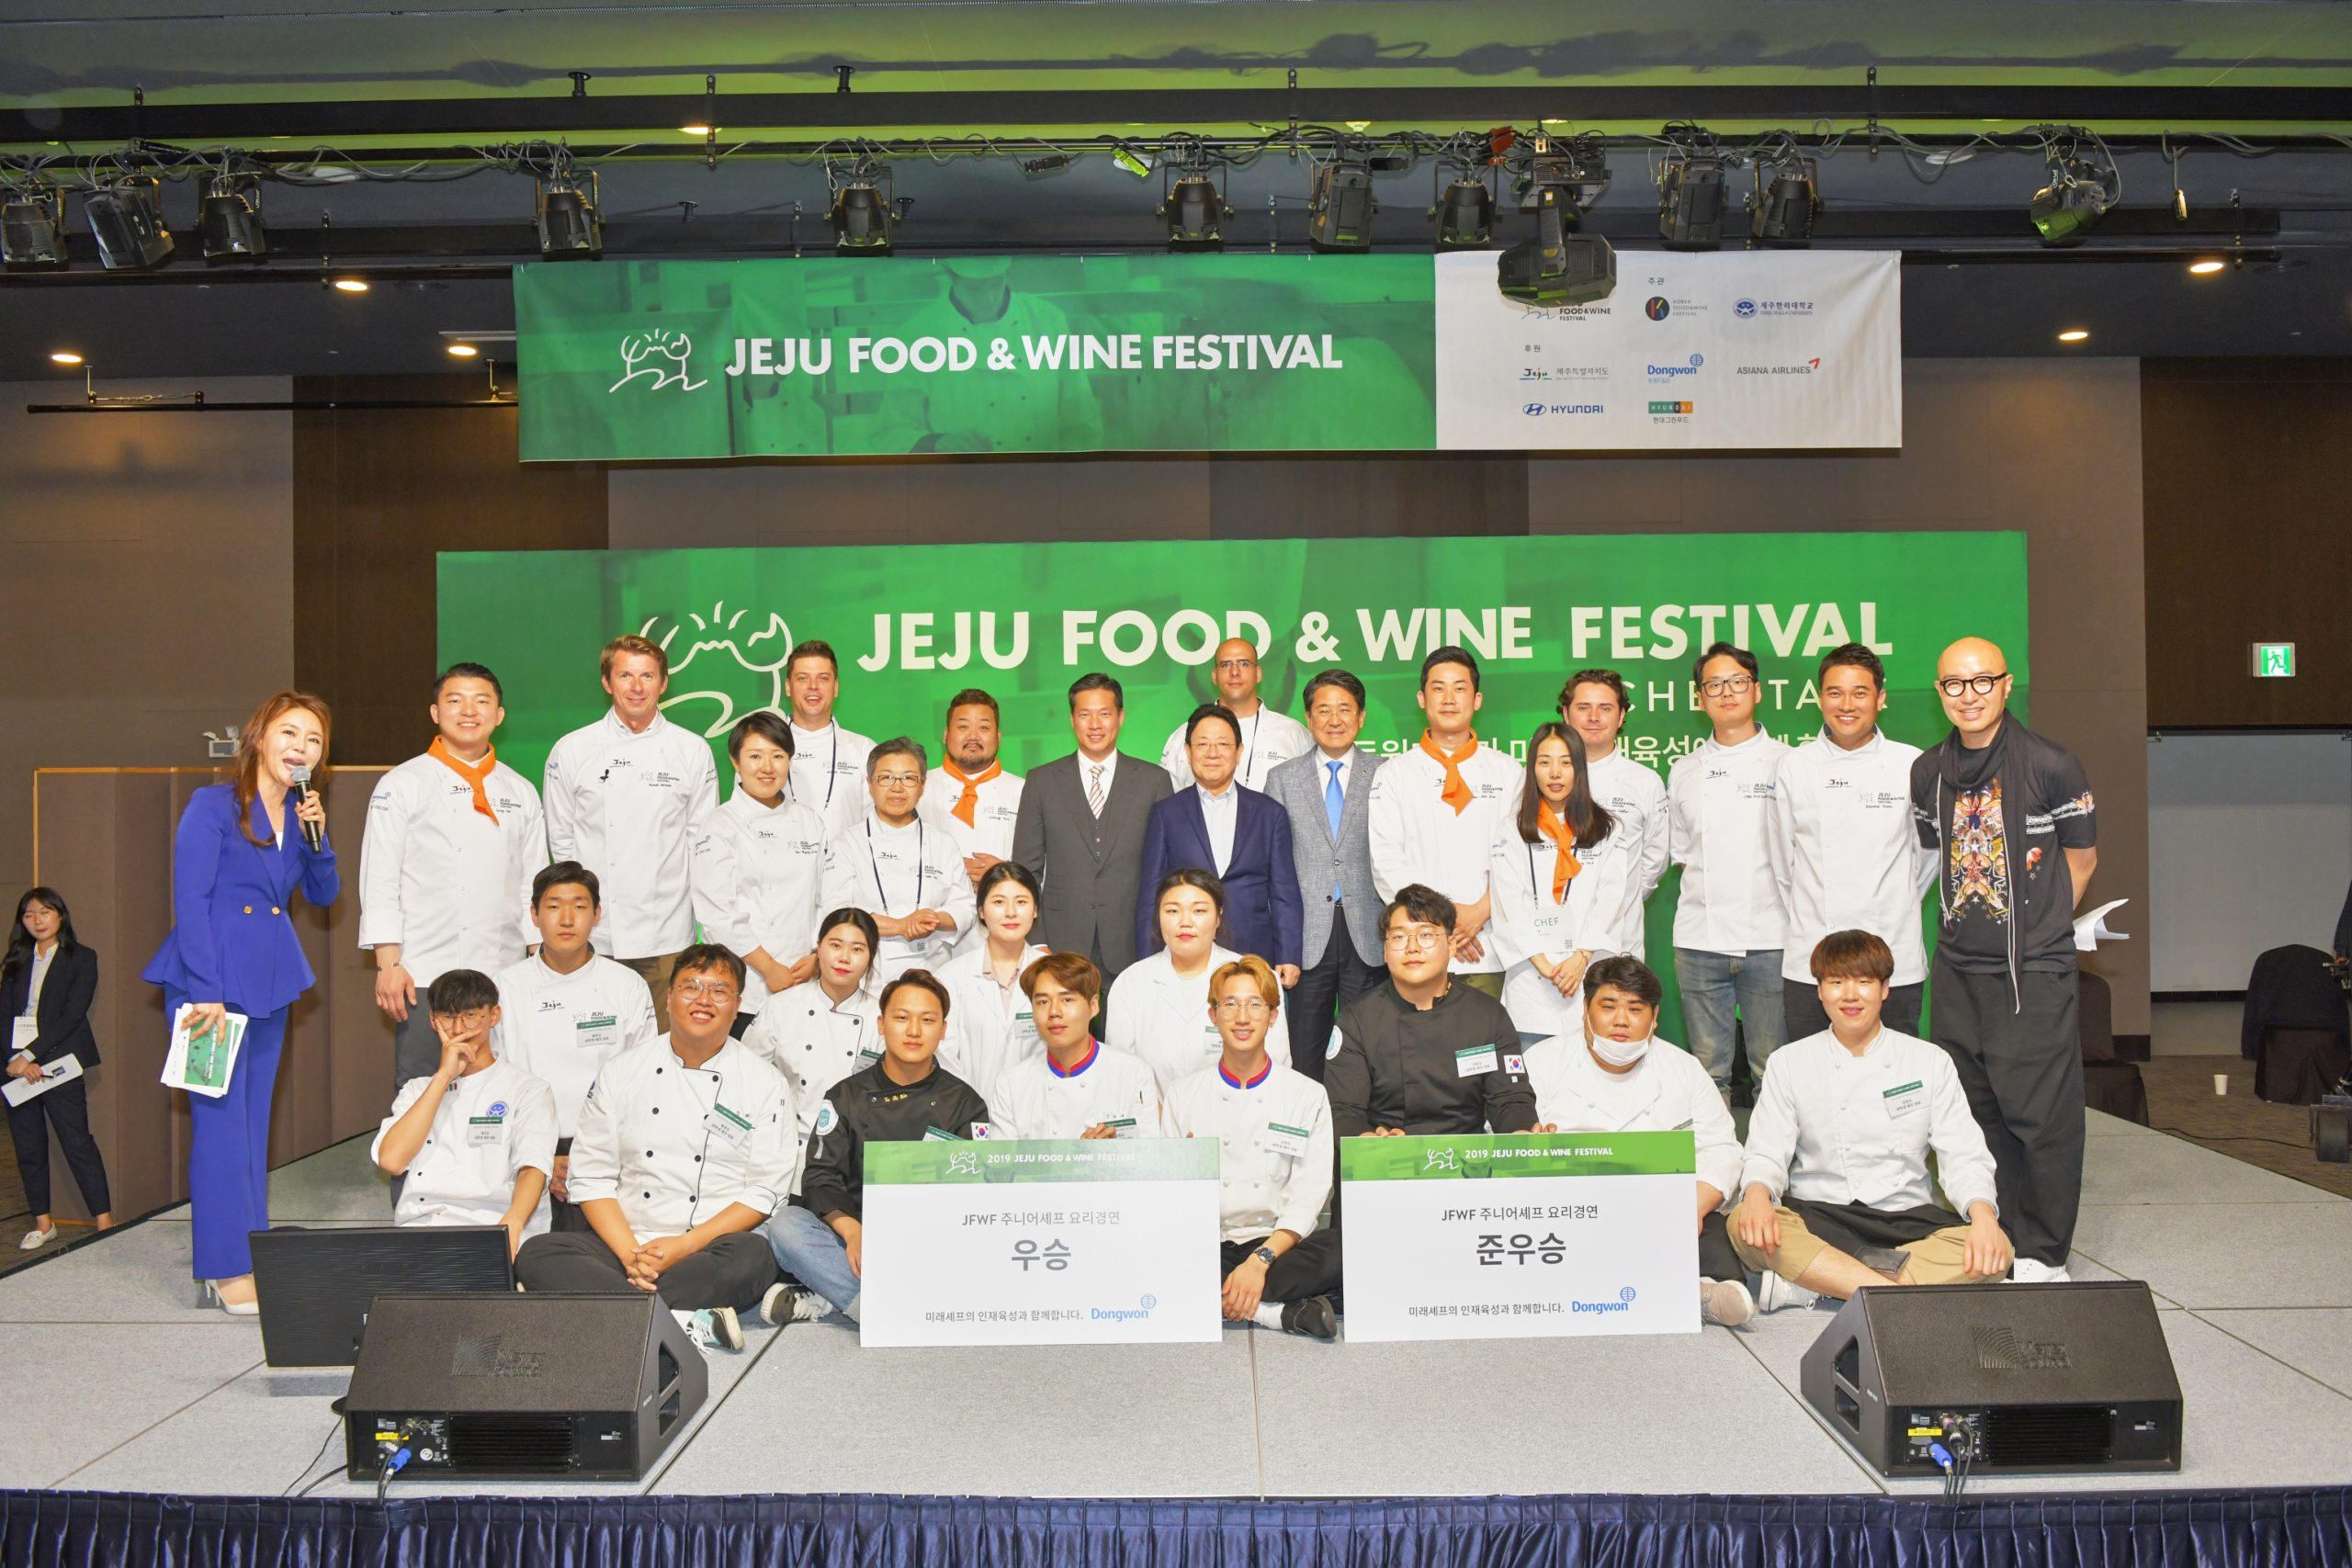 A group photo of the winning team and runner-up team after the Junior Chef cooking contest.